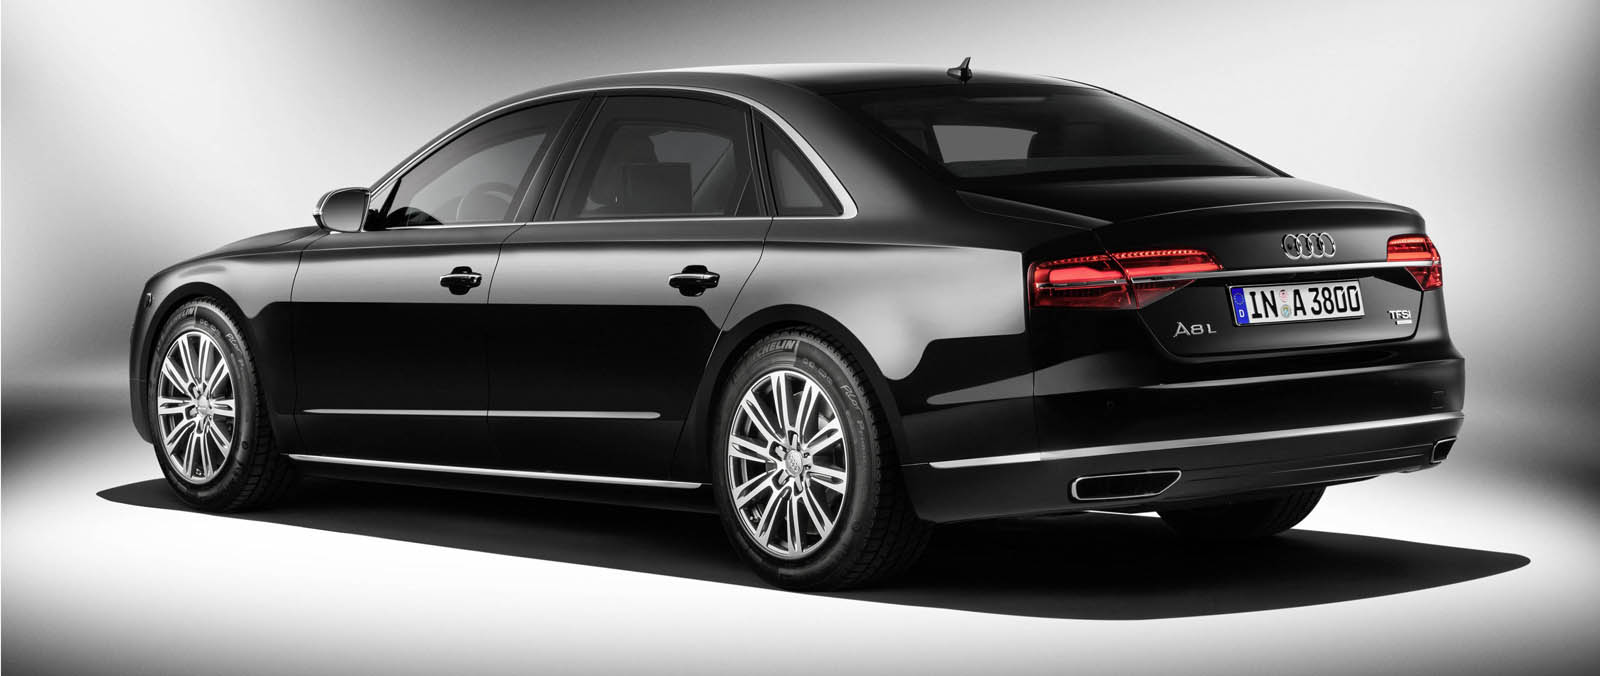 2018 audi a8 l security car photos catalog 2018. Black Bedroom Furniture Sets. Home Design Ideas